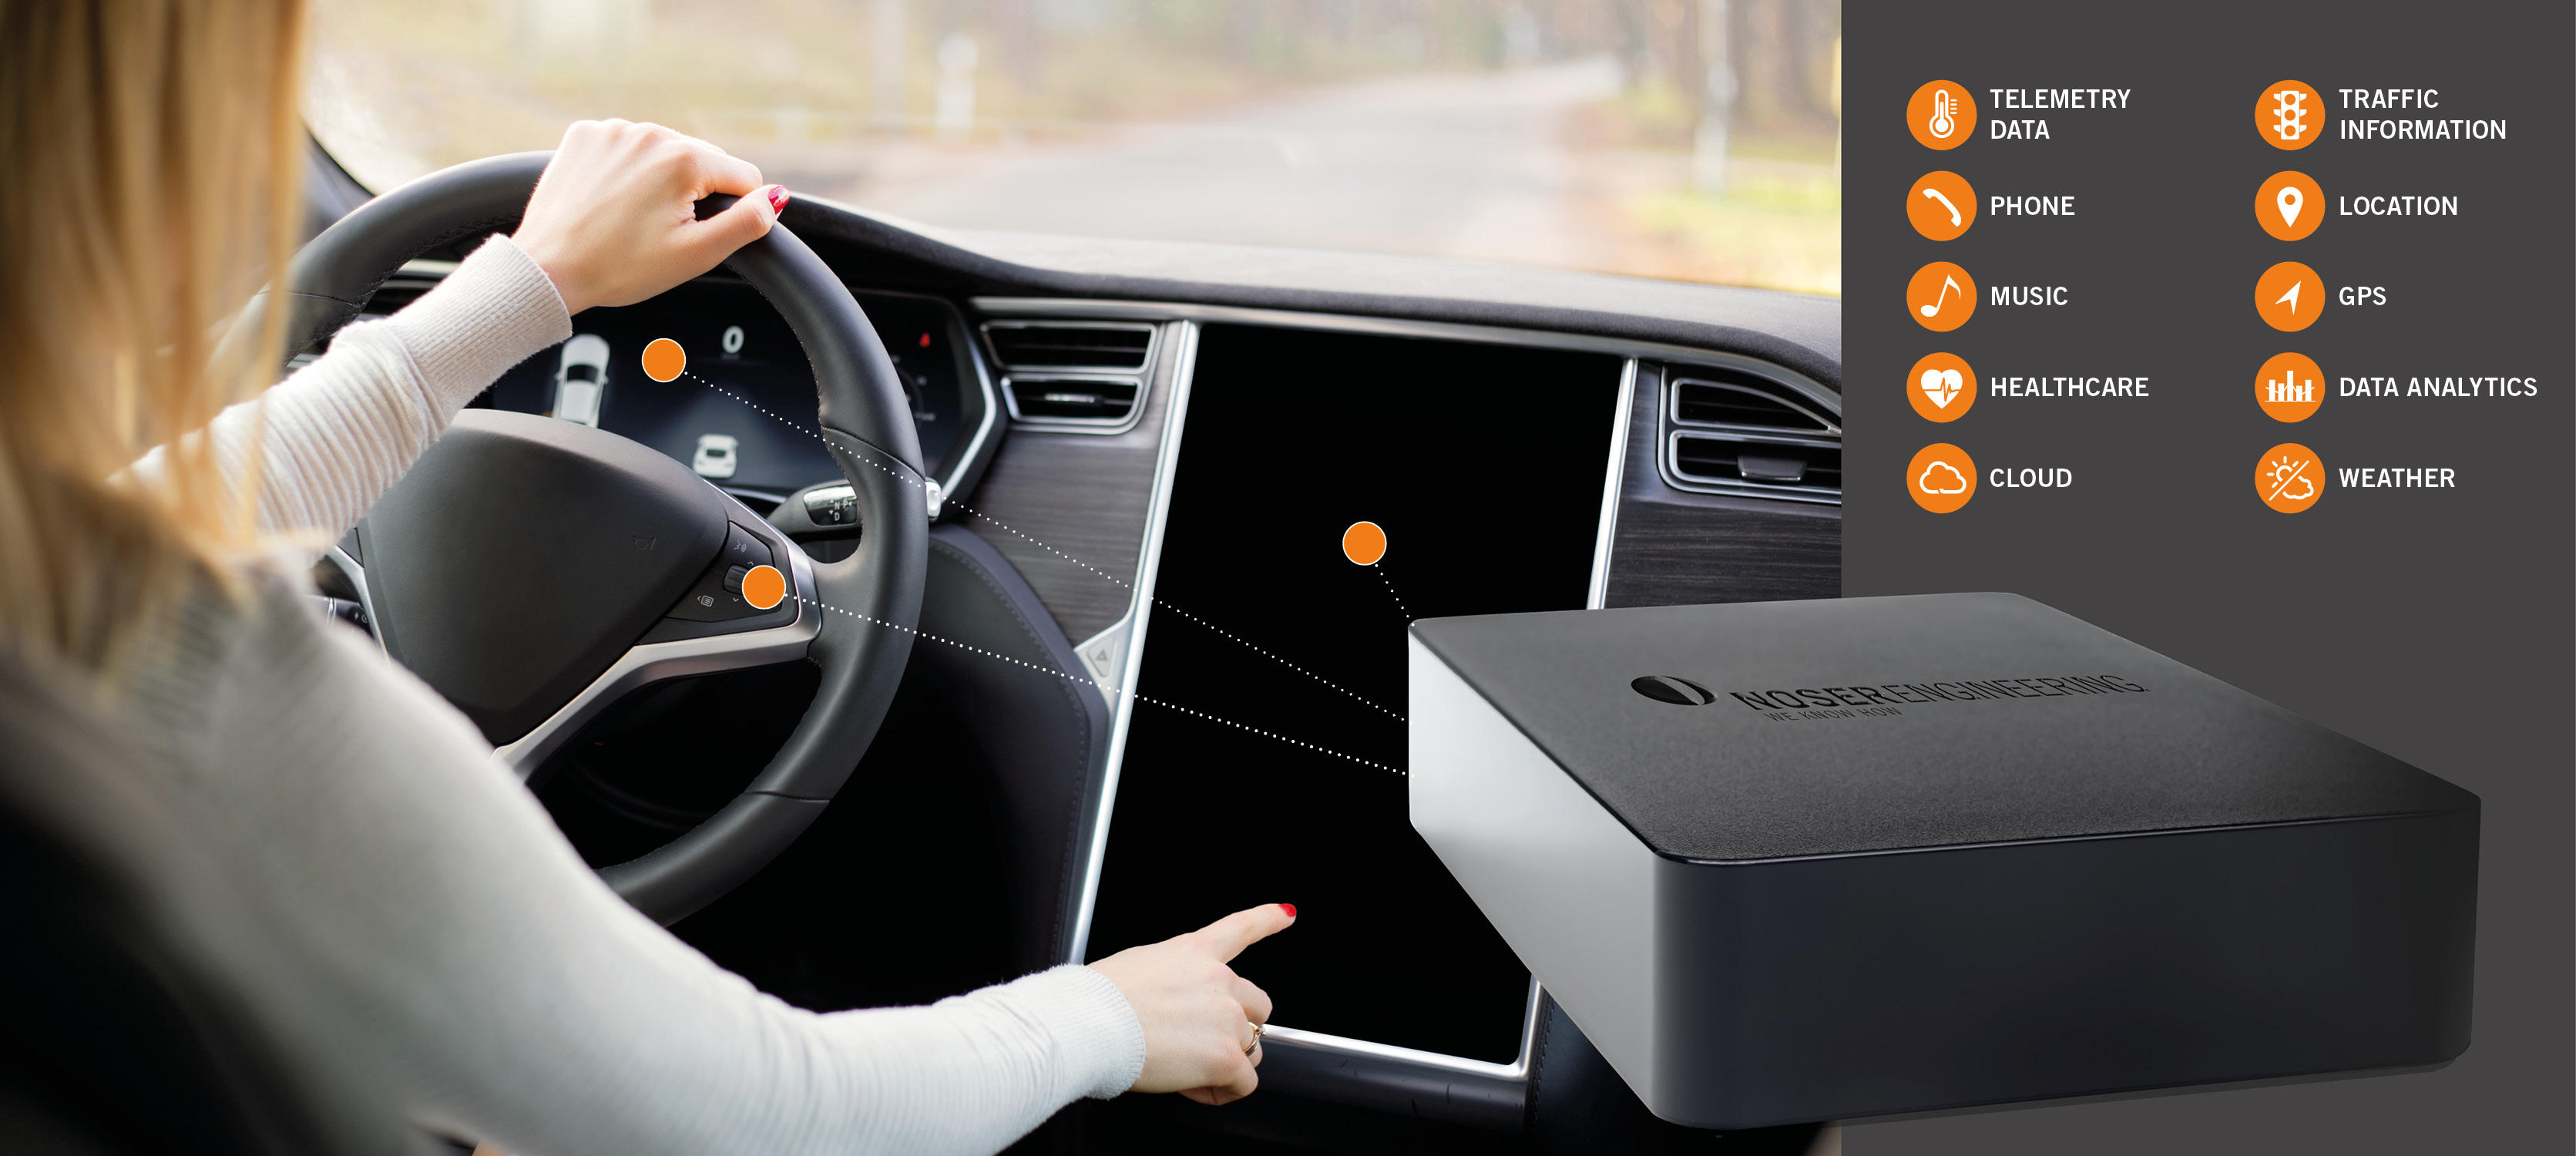 VNC Automotive collaborates with Noser Engineering AG to introduce a new MirrorLink enabled concept